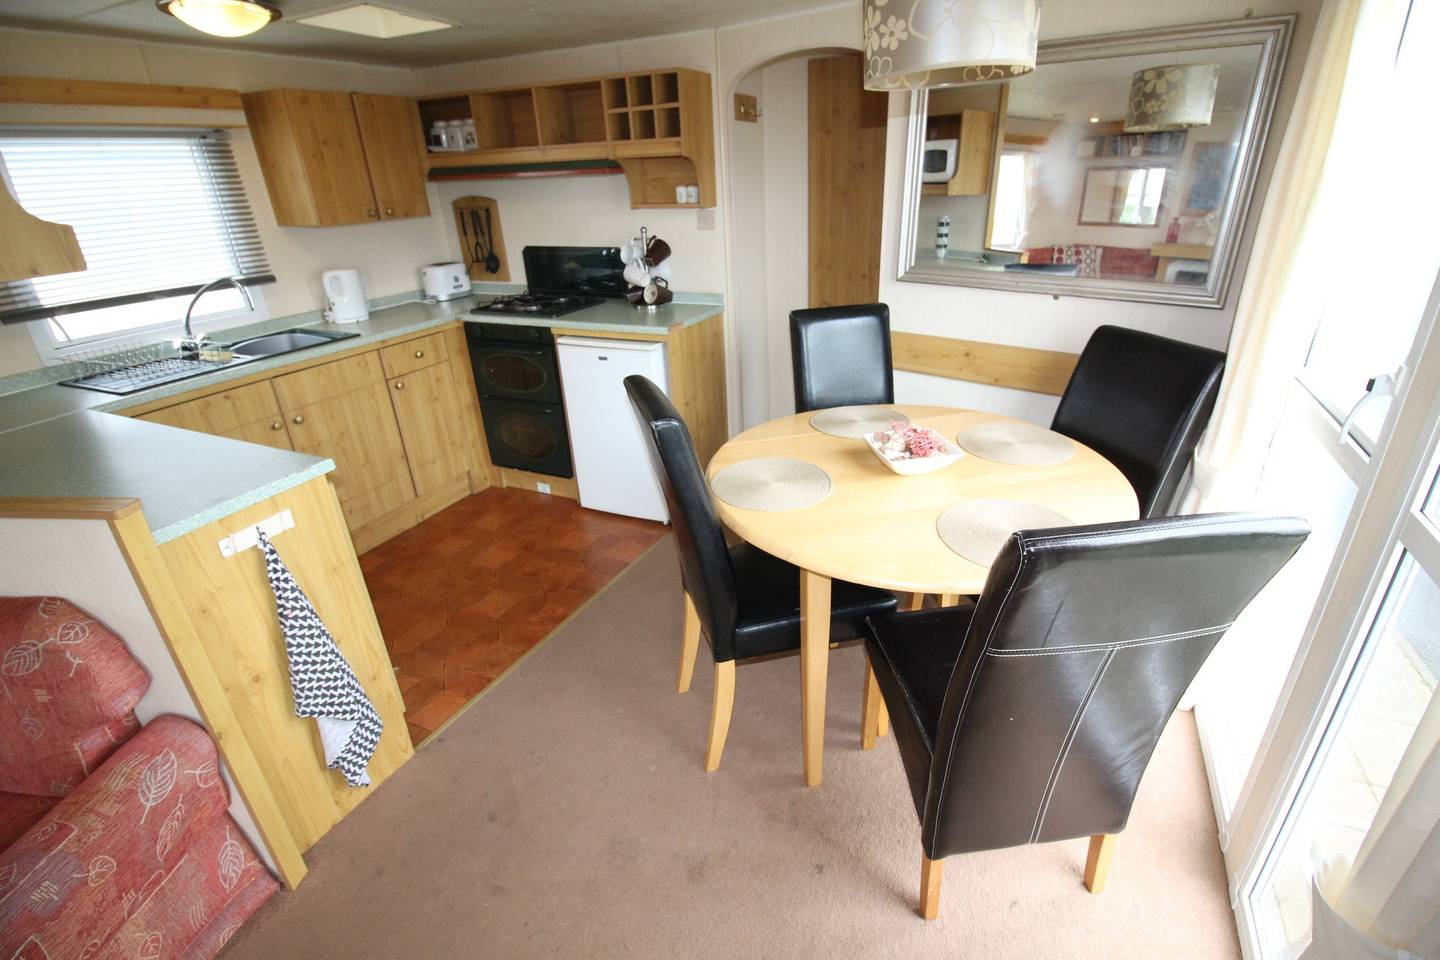 Apartment 3 Bed Caravan  Reighton Sands  Filey photo 18397735